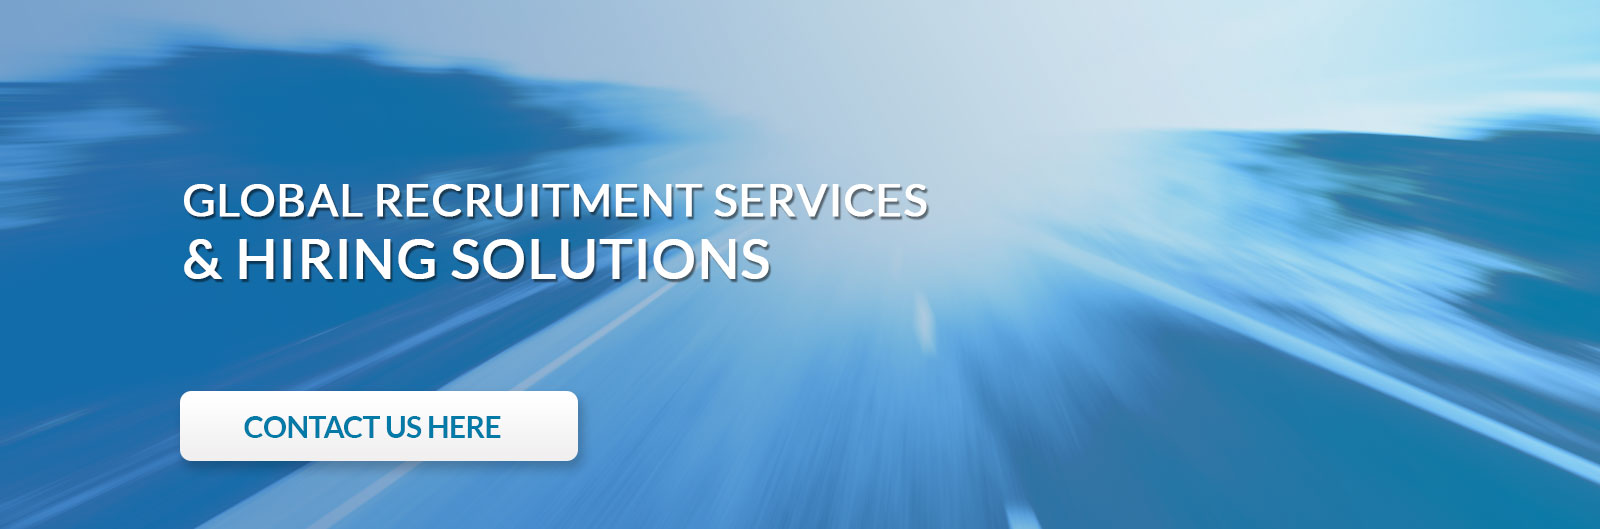 Global Recruitment Services & Hiring Solutions